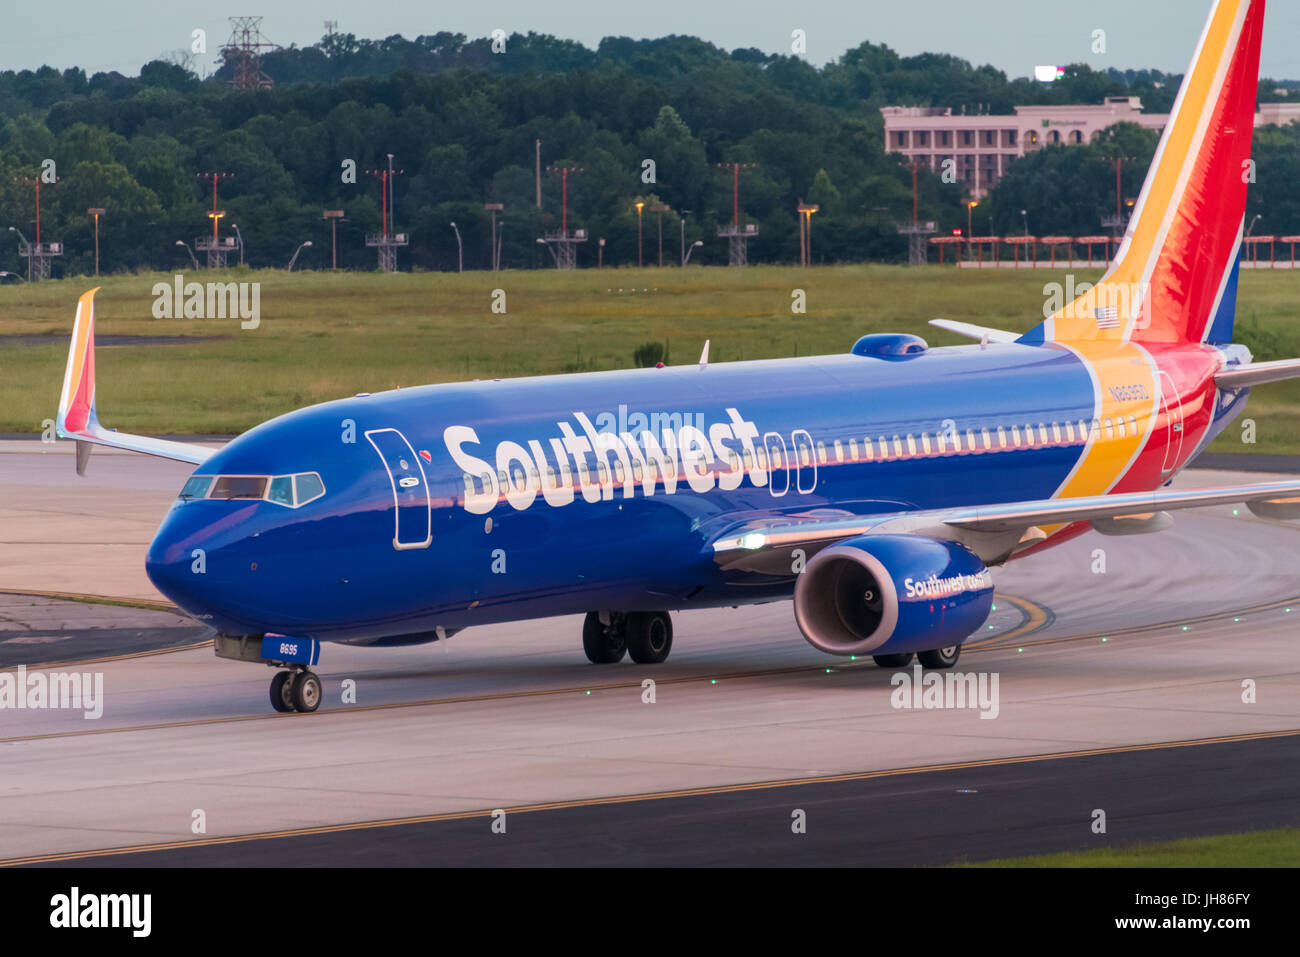 Southwest Airlines jet (Boeing 737-8H4) at Hartsfield-Jackson Atlanta International Airport in Atlanta, Georgia, - Stock Image